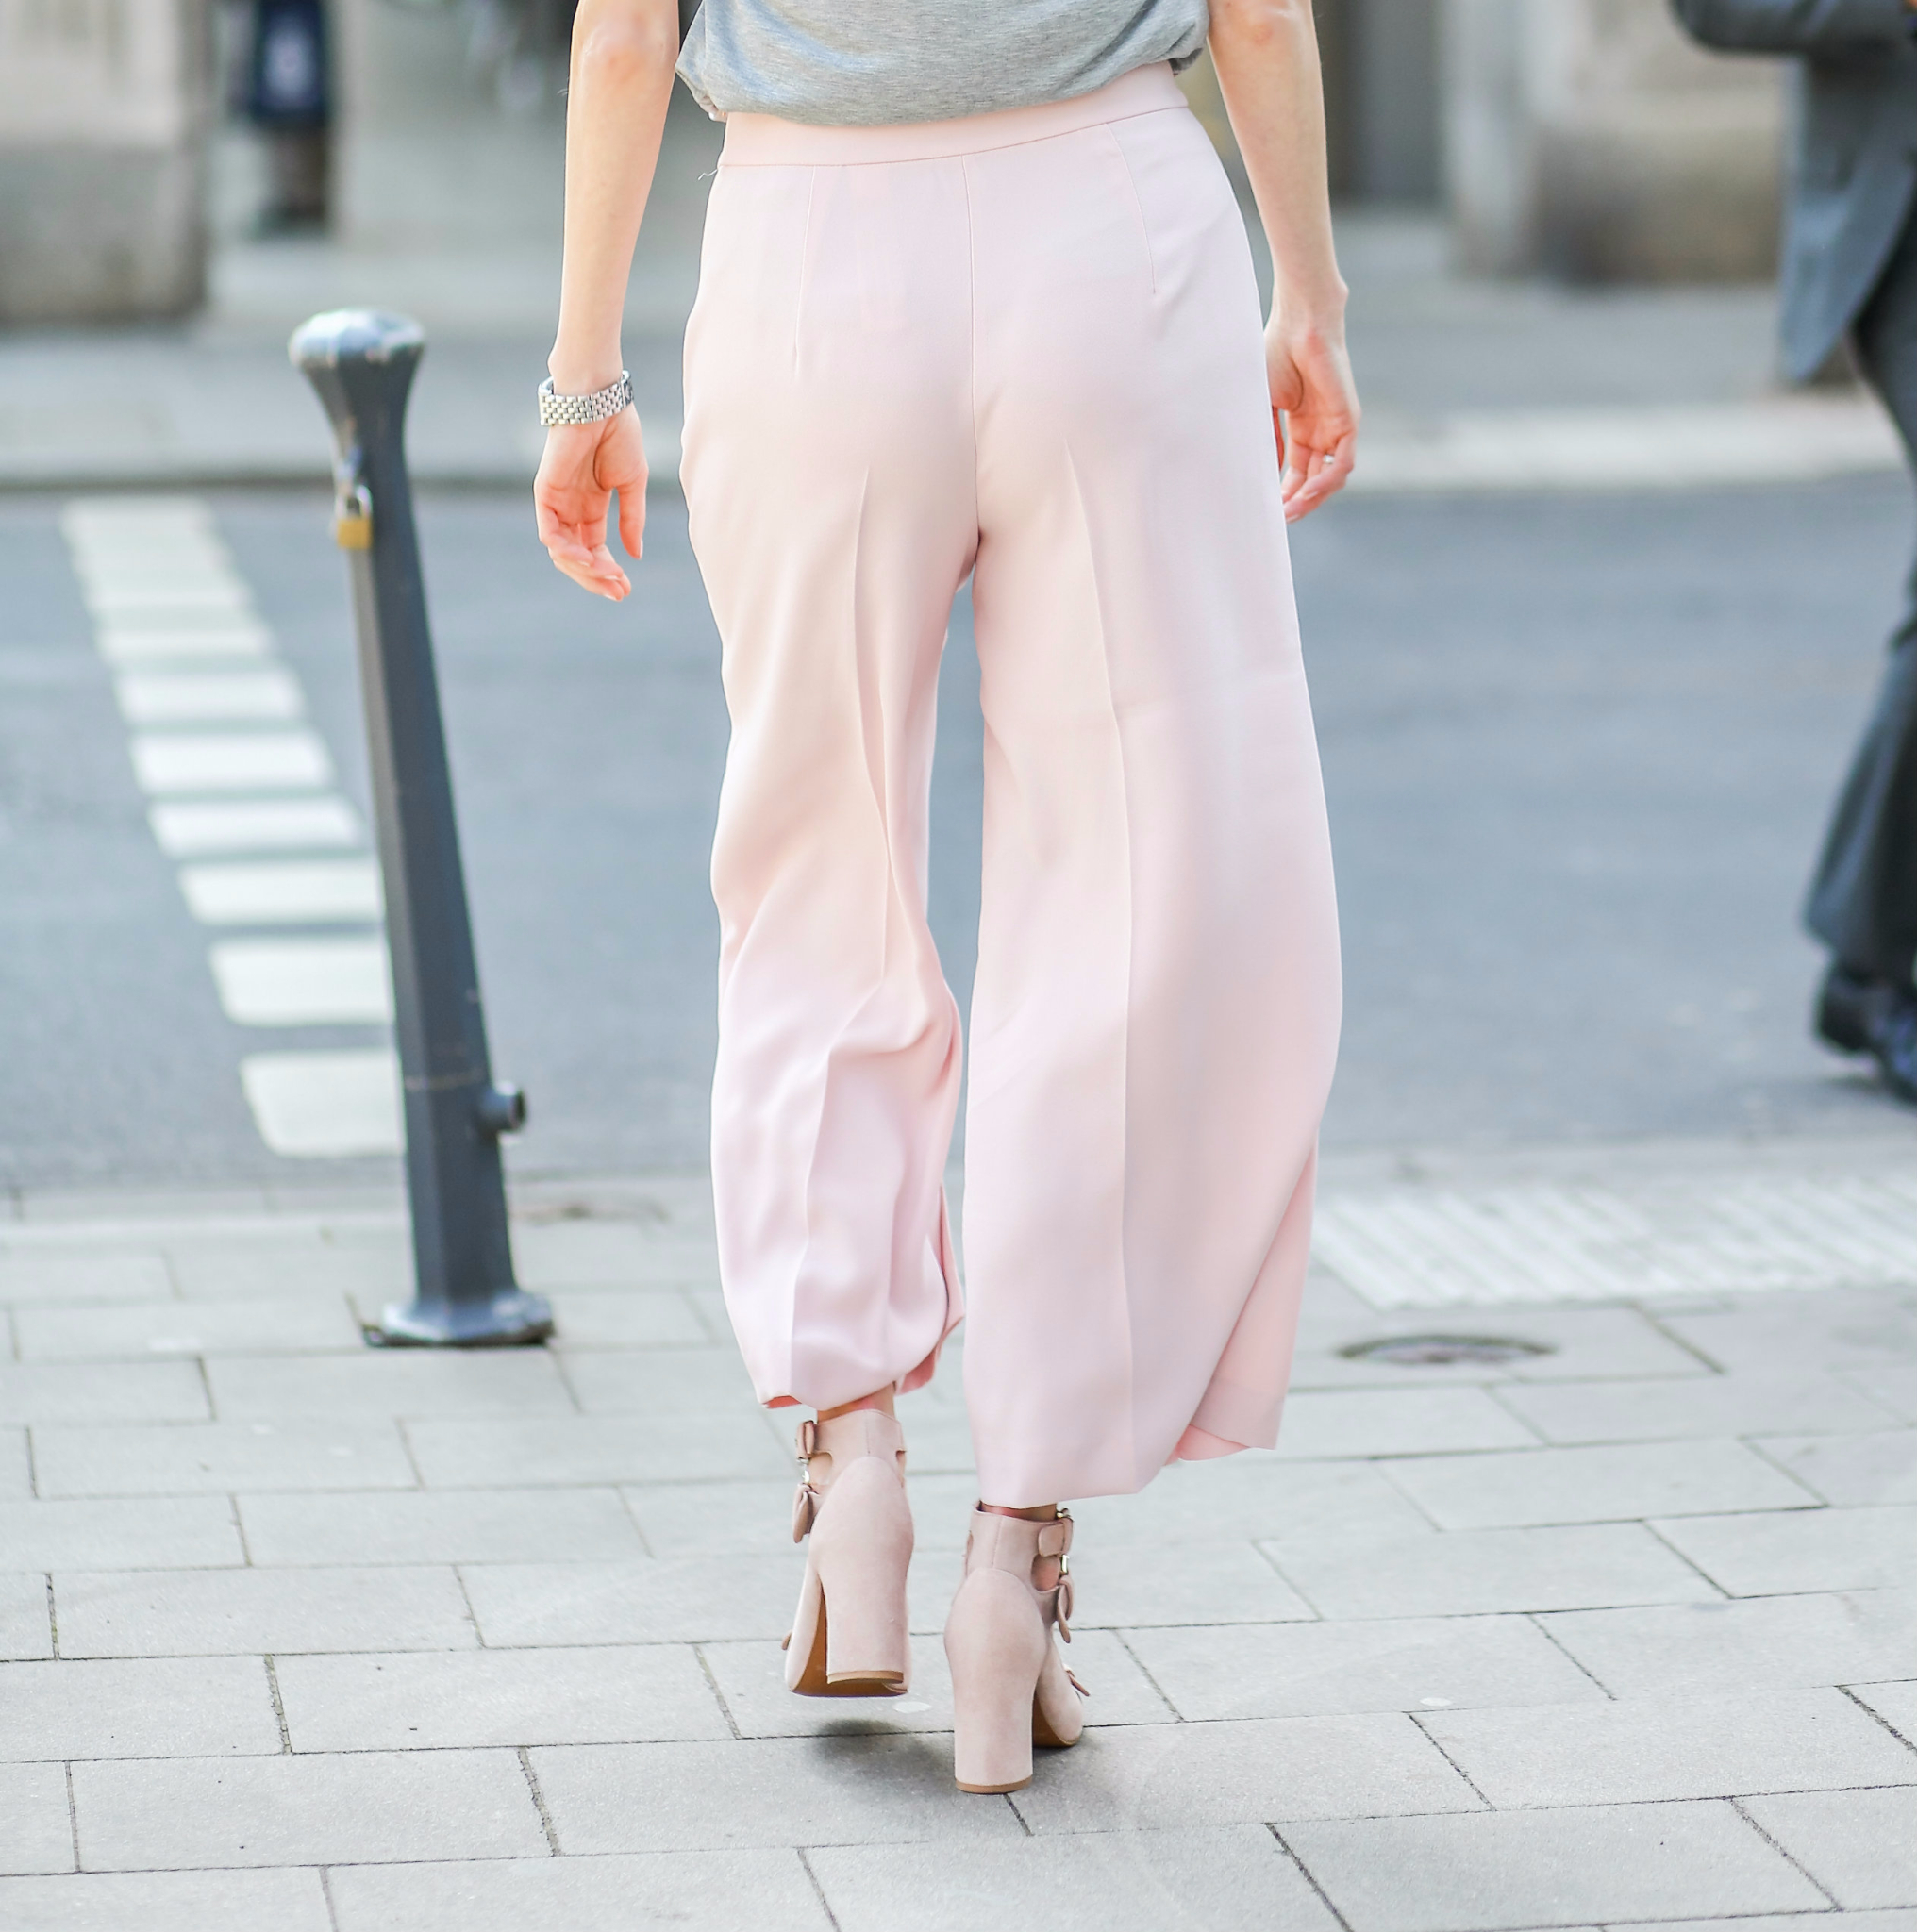 MOD-by-Monique-Fashion-Looks-A-touch-of-pink-8-1